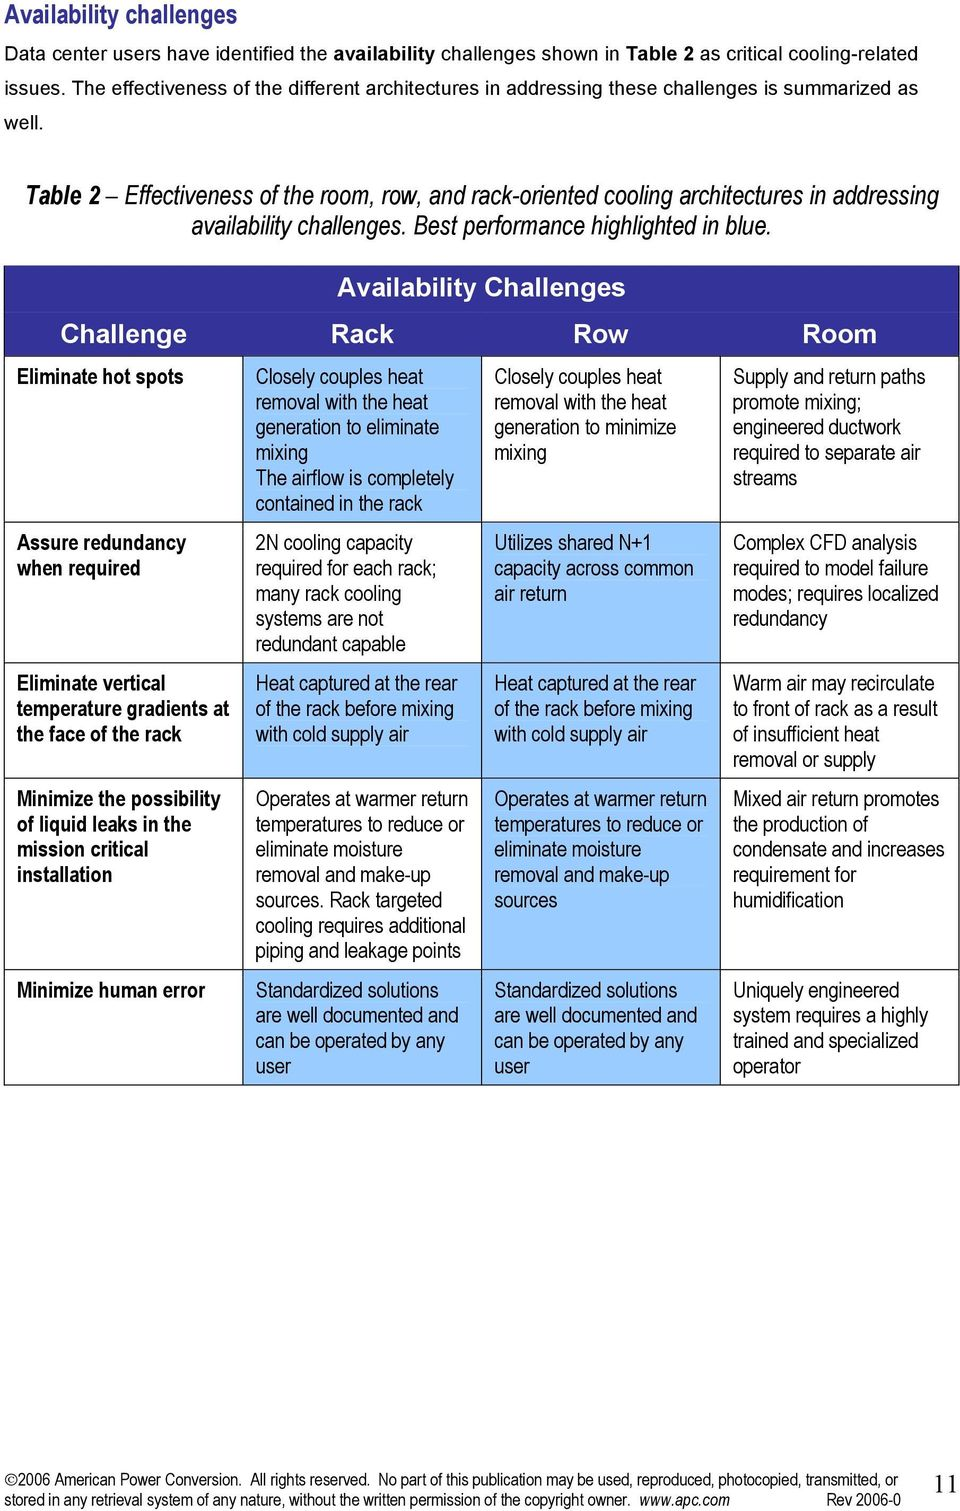 Table 2 Effectiveness of the room, row, and rack-oriented cooling architectures in addressing availability challenges. Best performance highlighted in blue.